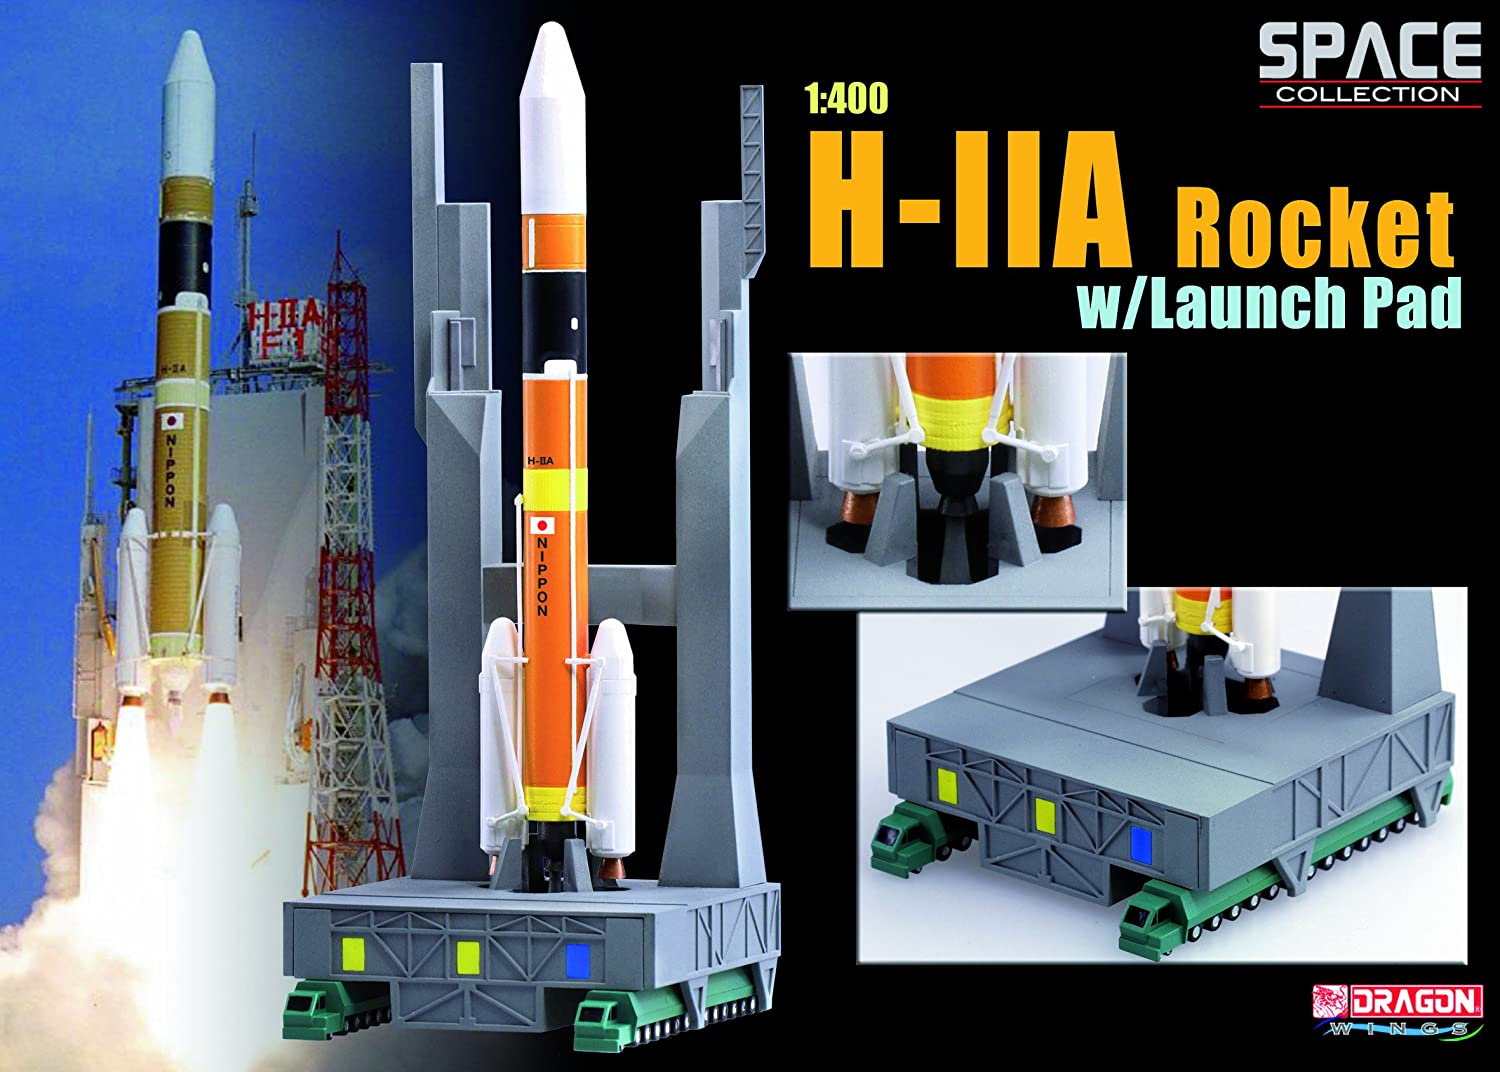 Dragon Models 1/400 H-IIA Rocket With Launch Pad (Space) Dragon Models USA Inc. DRW-56327